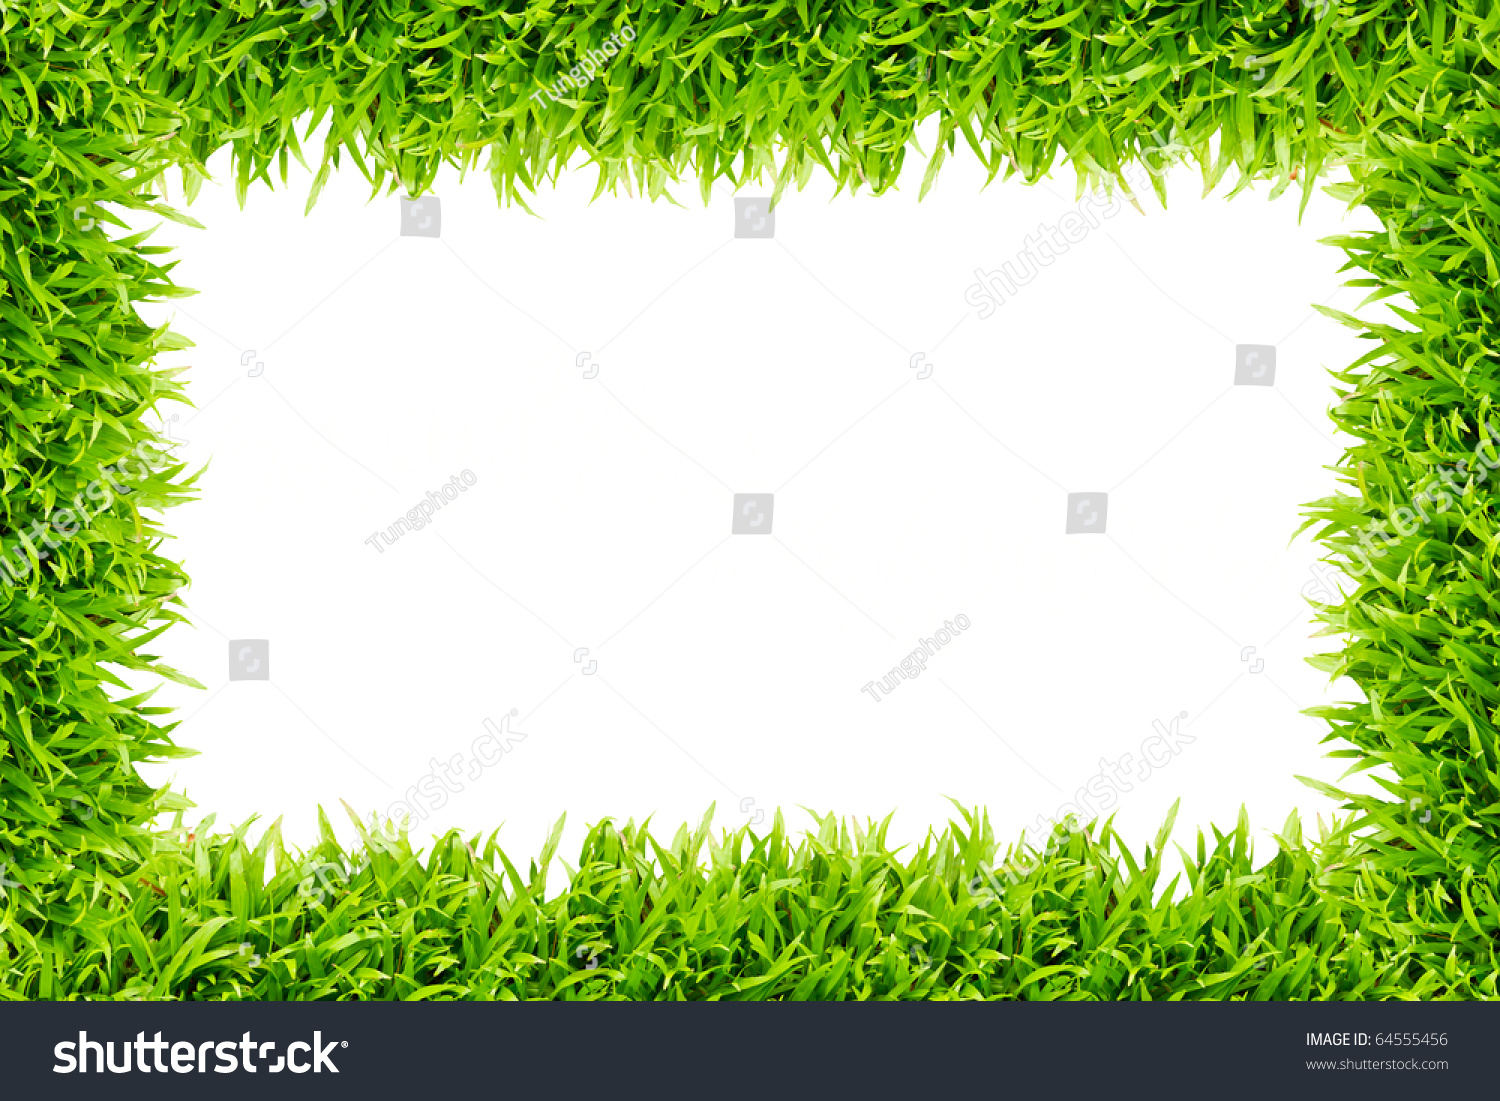 Grass Frame On White Background - You Can Add Any Word ...